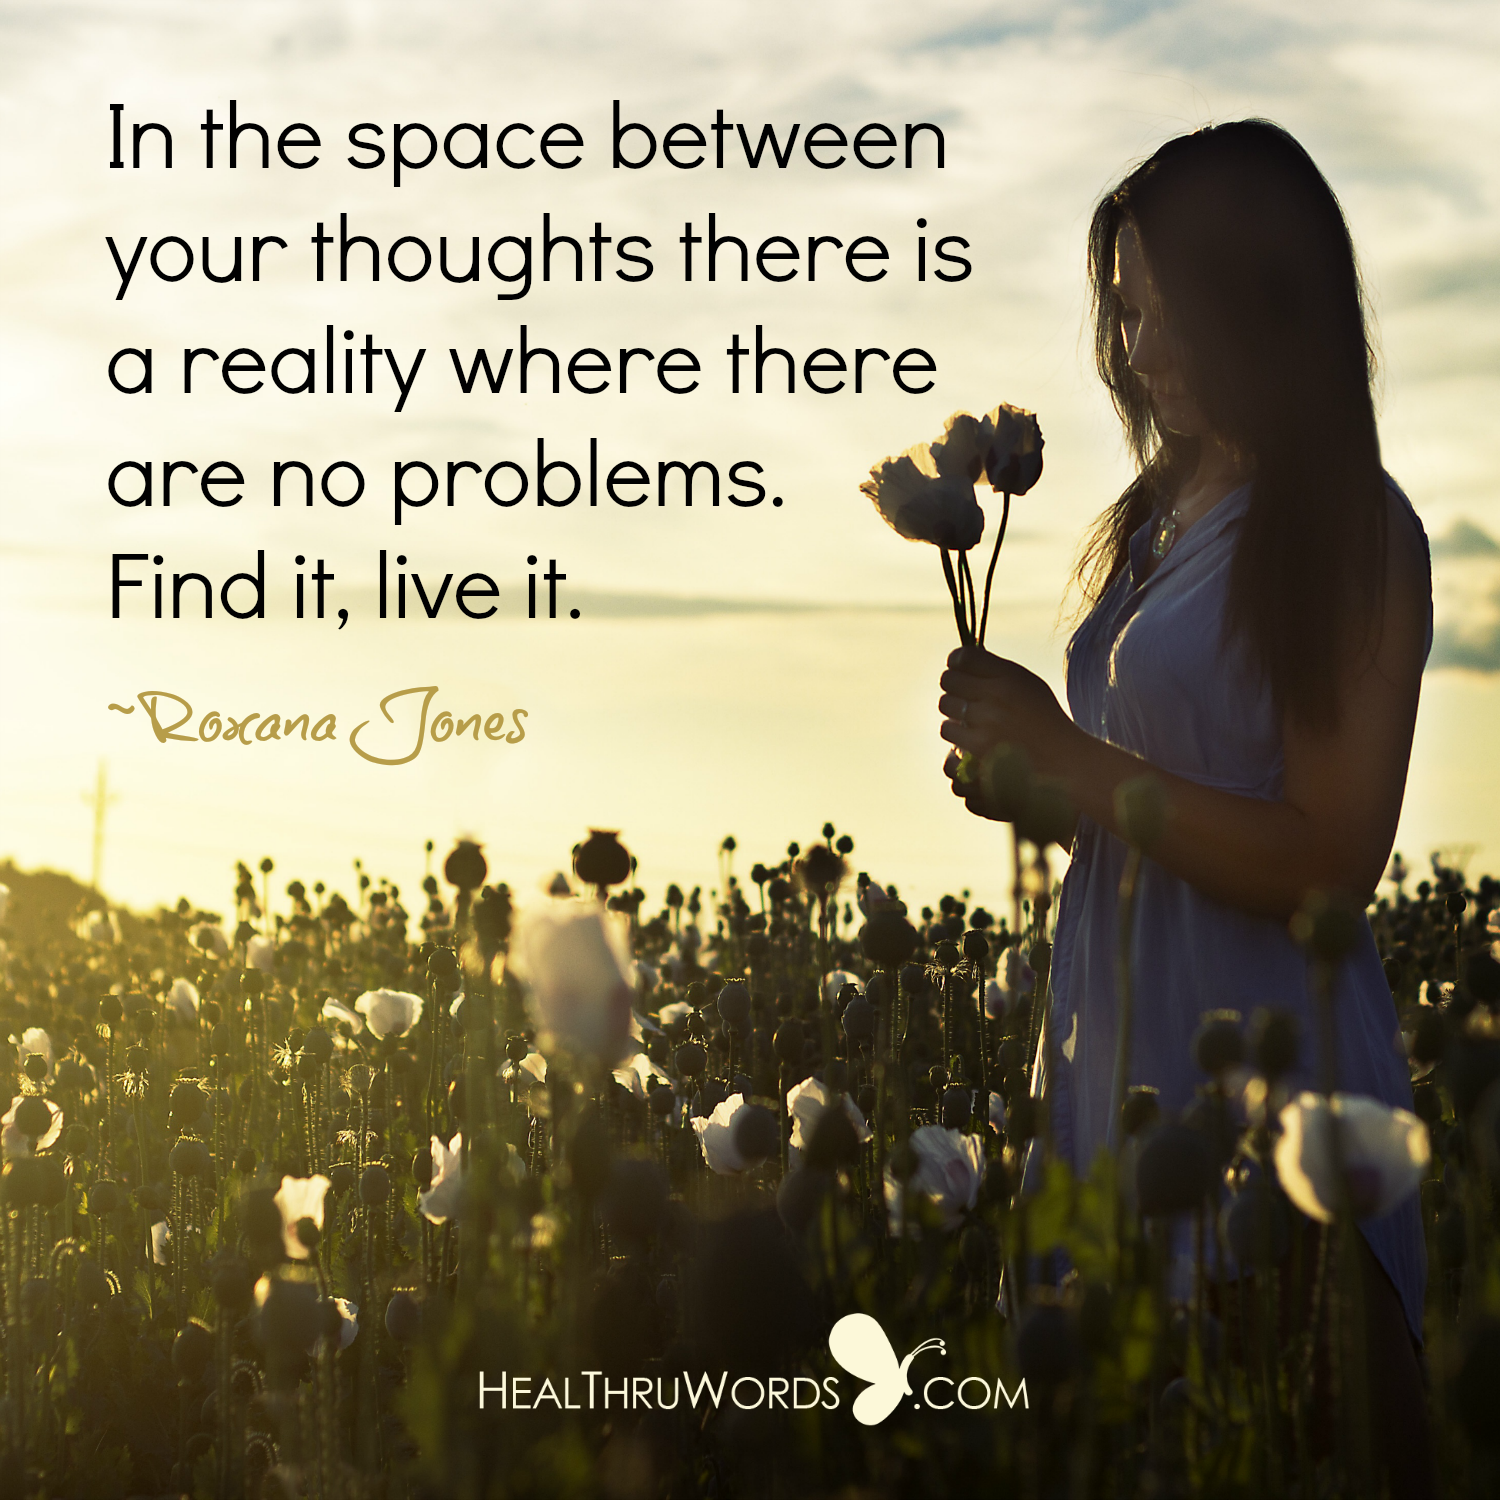 Inspirational Image: The Space Between Thoughts